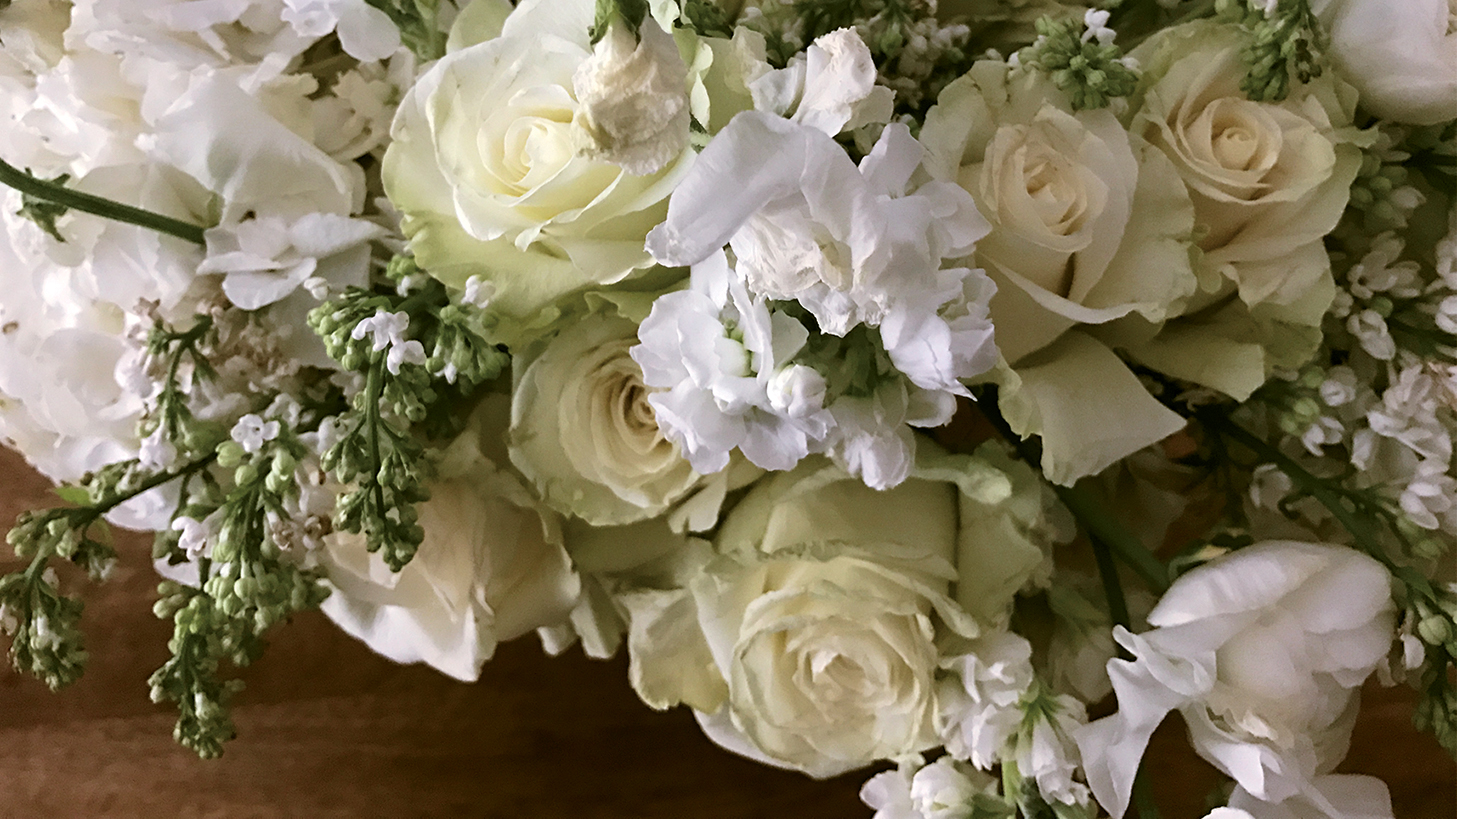 New york citys premiere flower resource inspired citizen sourced from around the world lan only uses the freshest and most beautiful blooms putting emphasis on whats in season and hard to get varieties izmirmasajfo